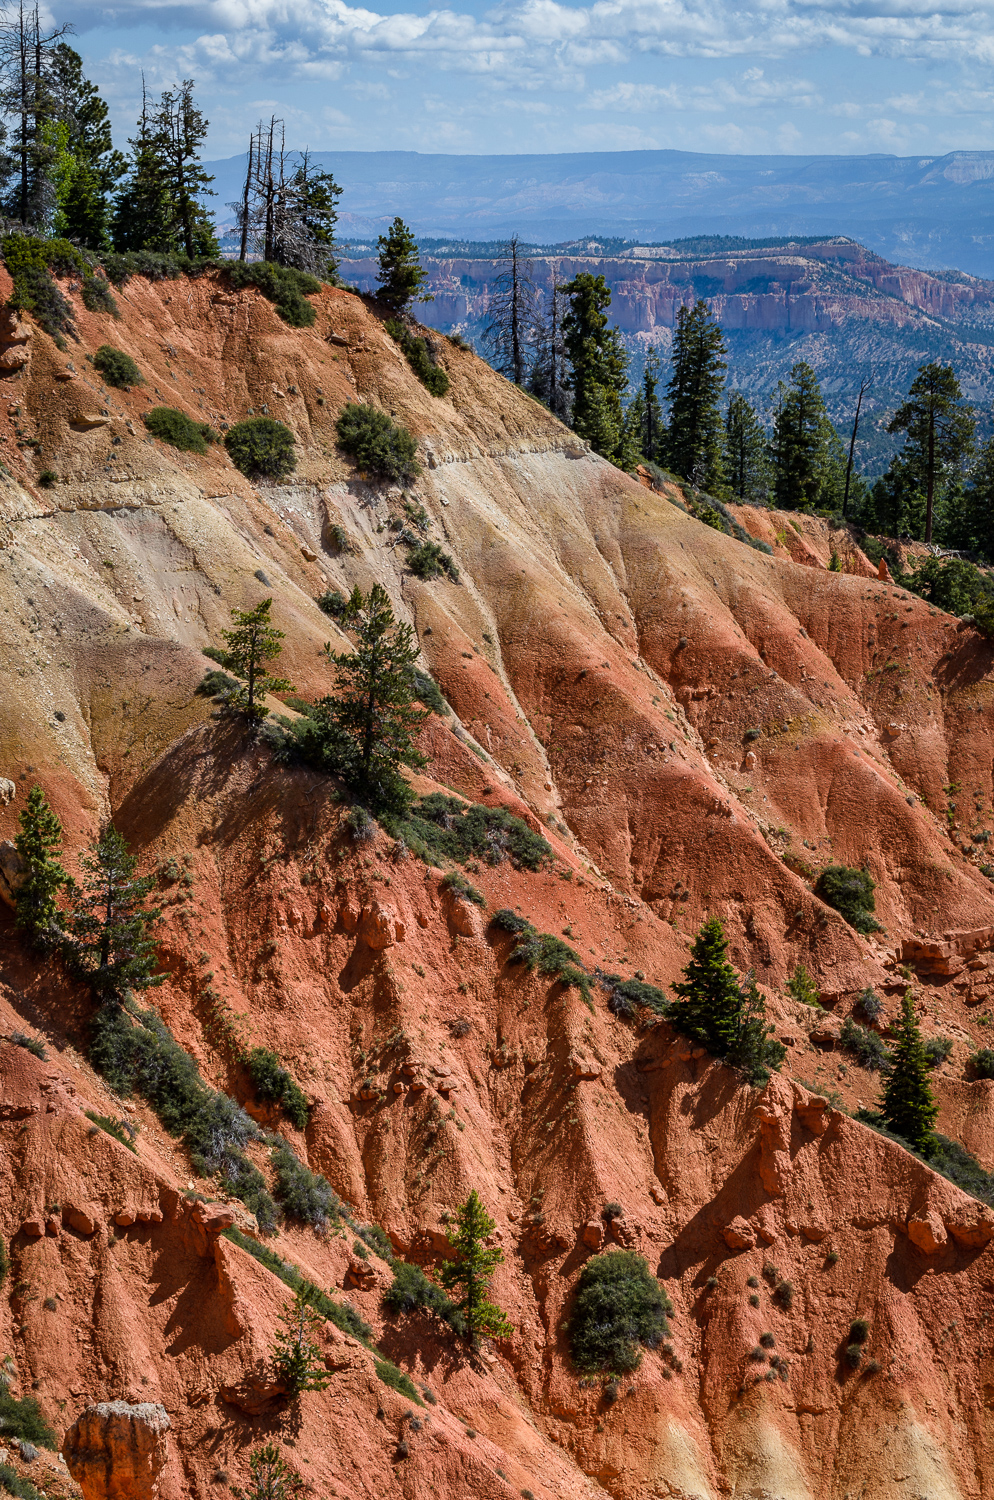 Bryce Canyon with Nikon D7000 and Nikon AF-S 70-300 VR F4-6.3